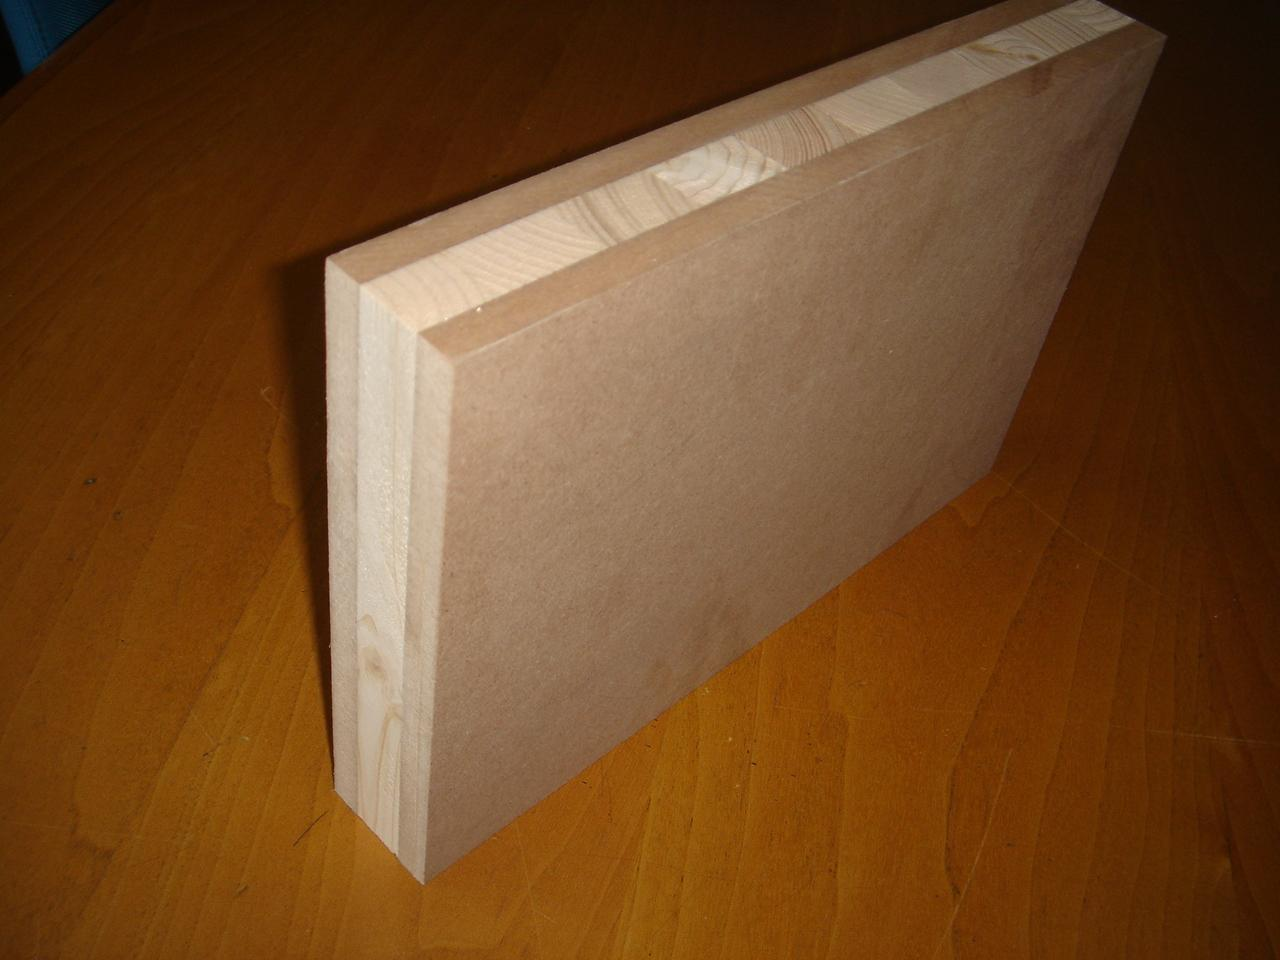 We offer Blockboard Panels with spruce core and 12 mm thick Mdf faces #3C1B04 1280x960